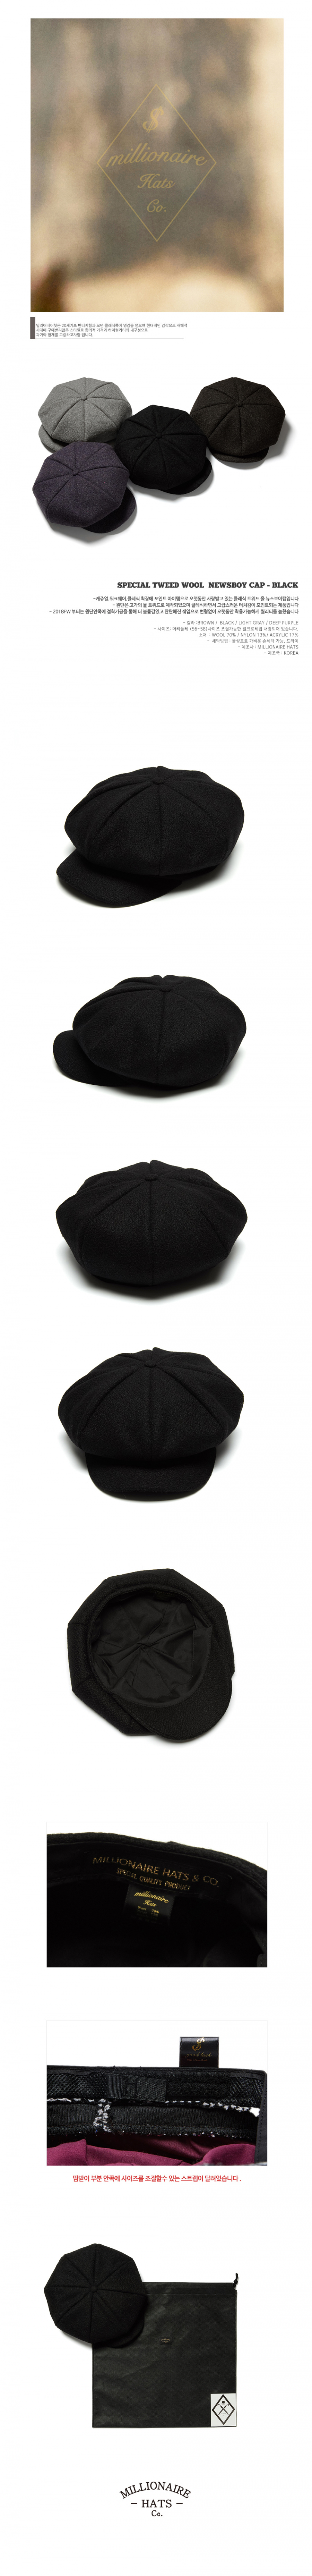 밀리어네어햇(MILLIONAIRE HATS) SPECIAL TWEED WOOL NEWSBOY CAP - BLACK